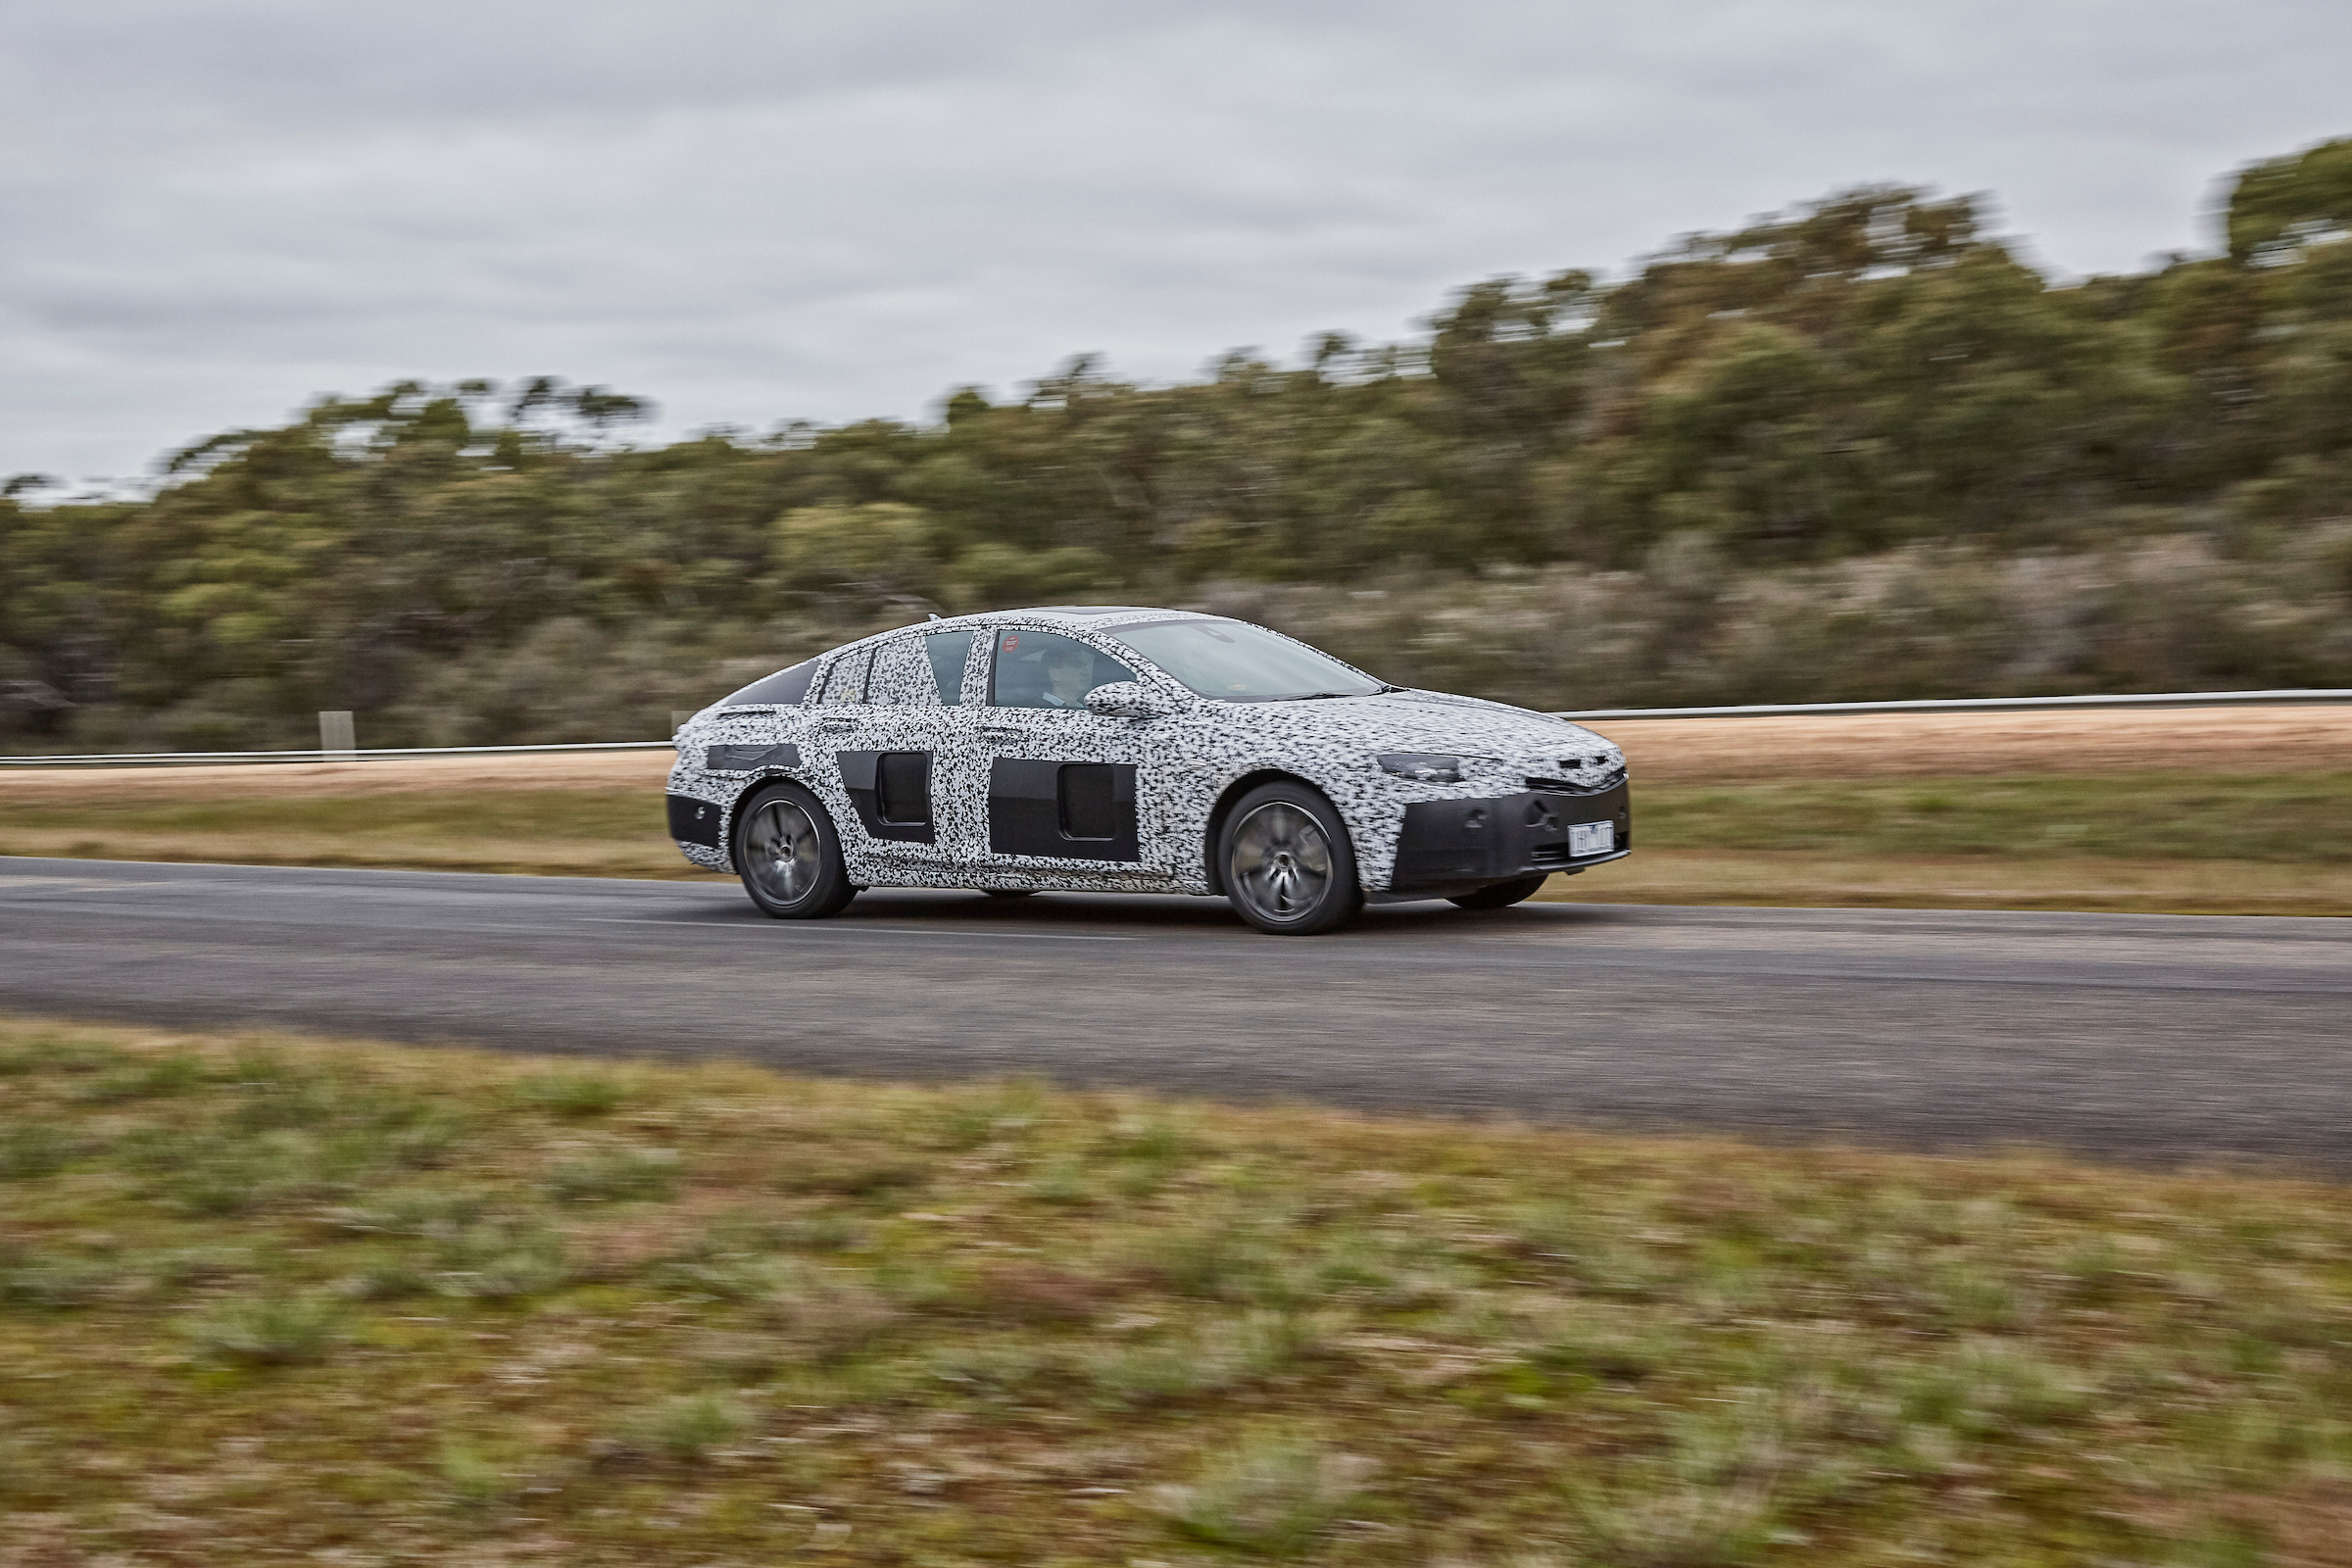 Awesome 2018 Holden Commodore And Opel Insignia The Clever Art Of Camouflage